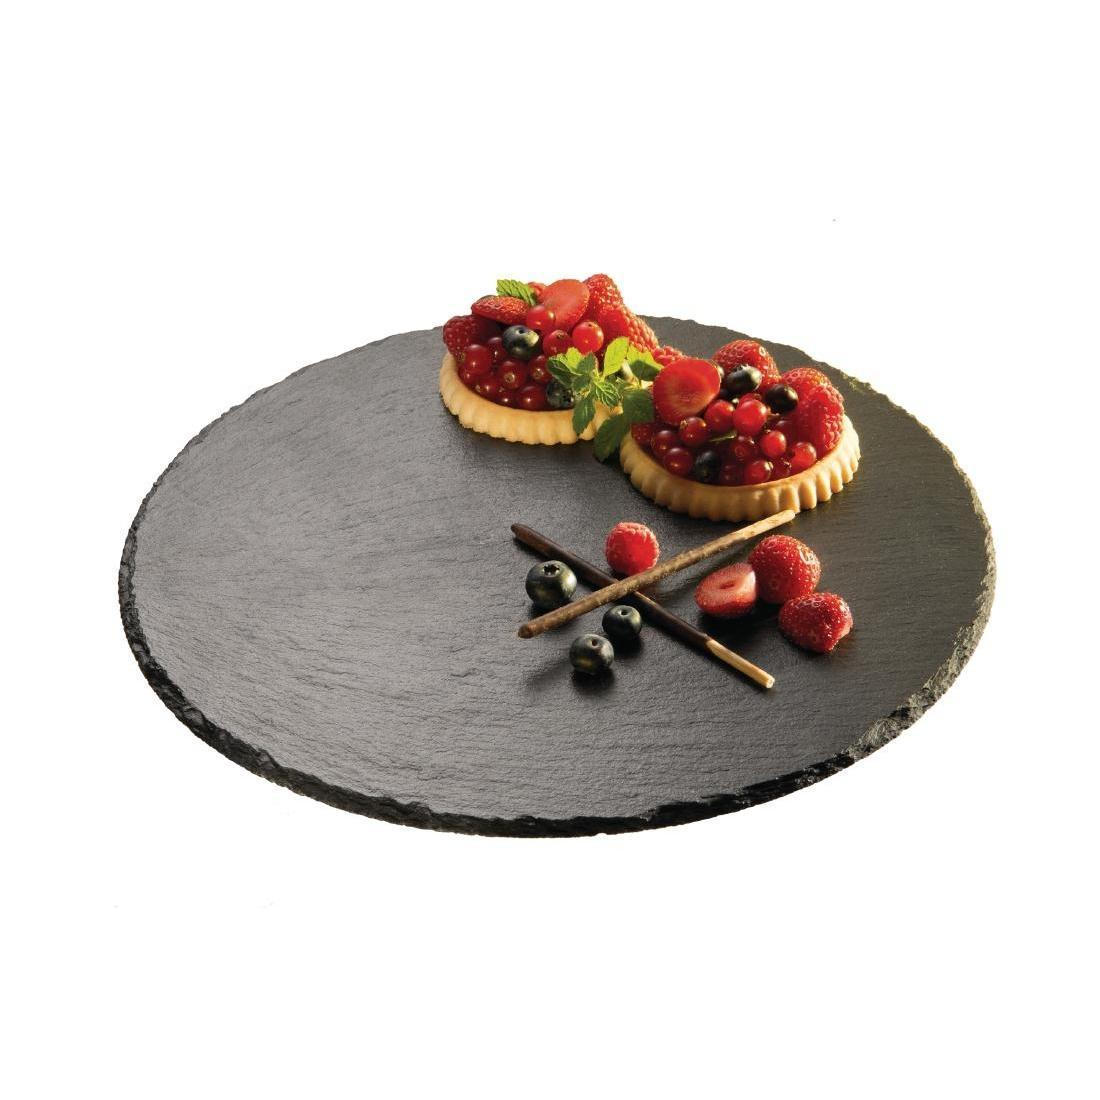 APS Revolving Platter Slate 320mm - Each - CK356